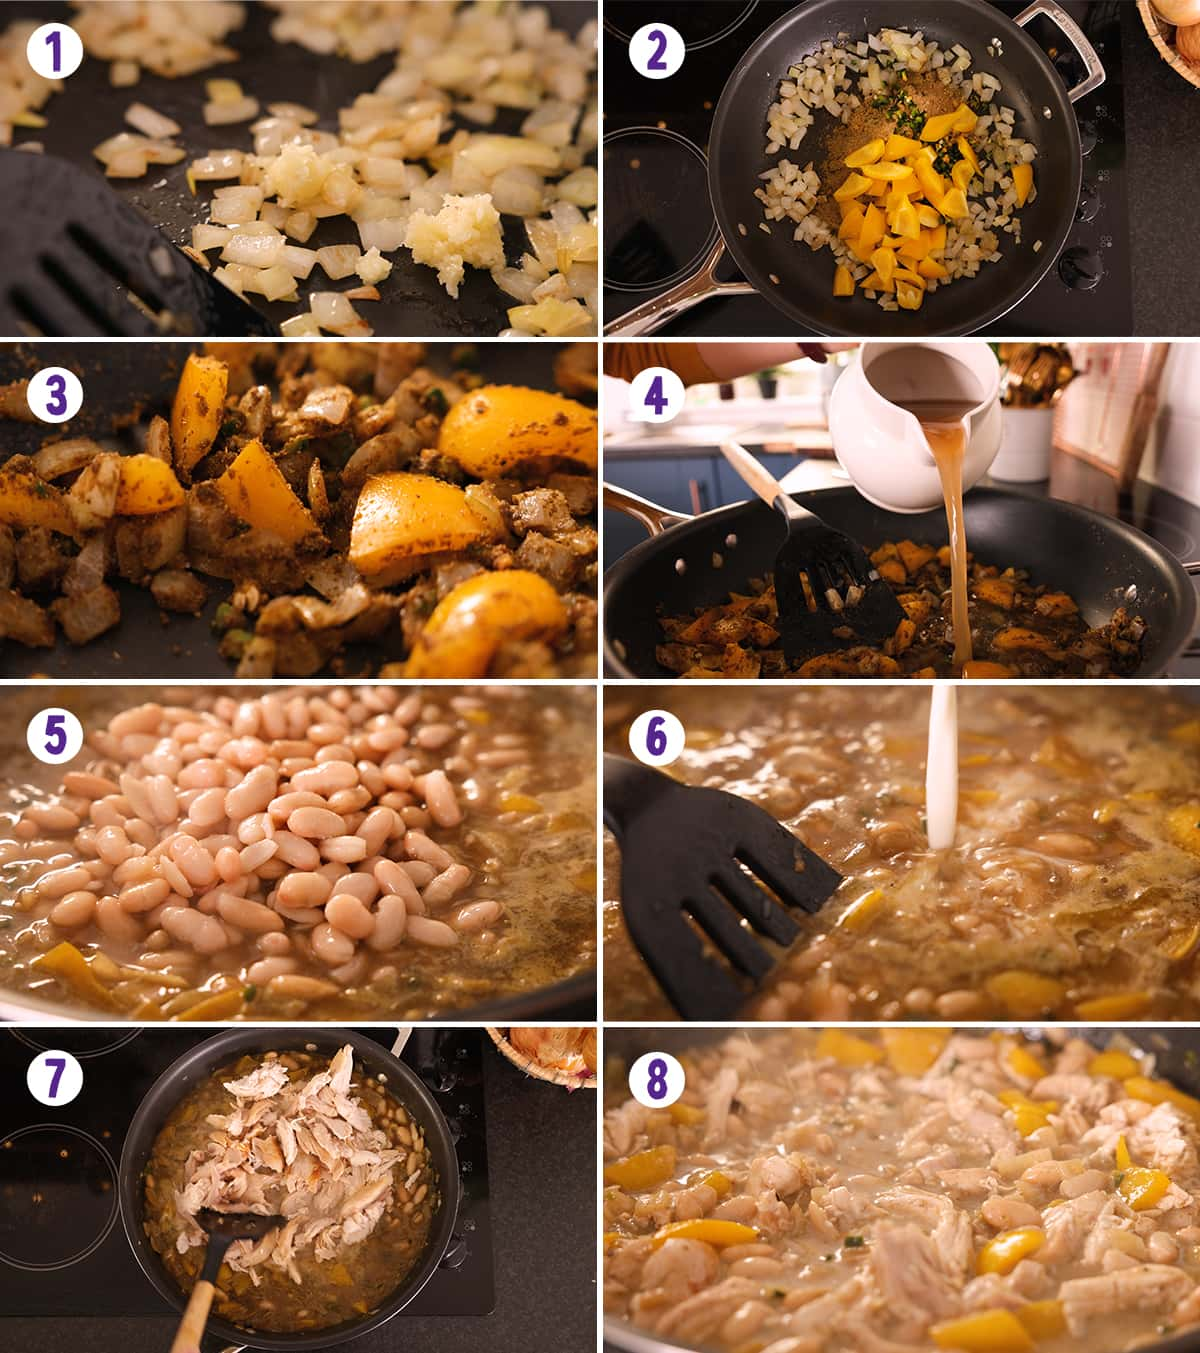 8 image collage showing how to make white chilli chicken con carne